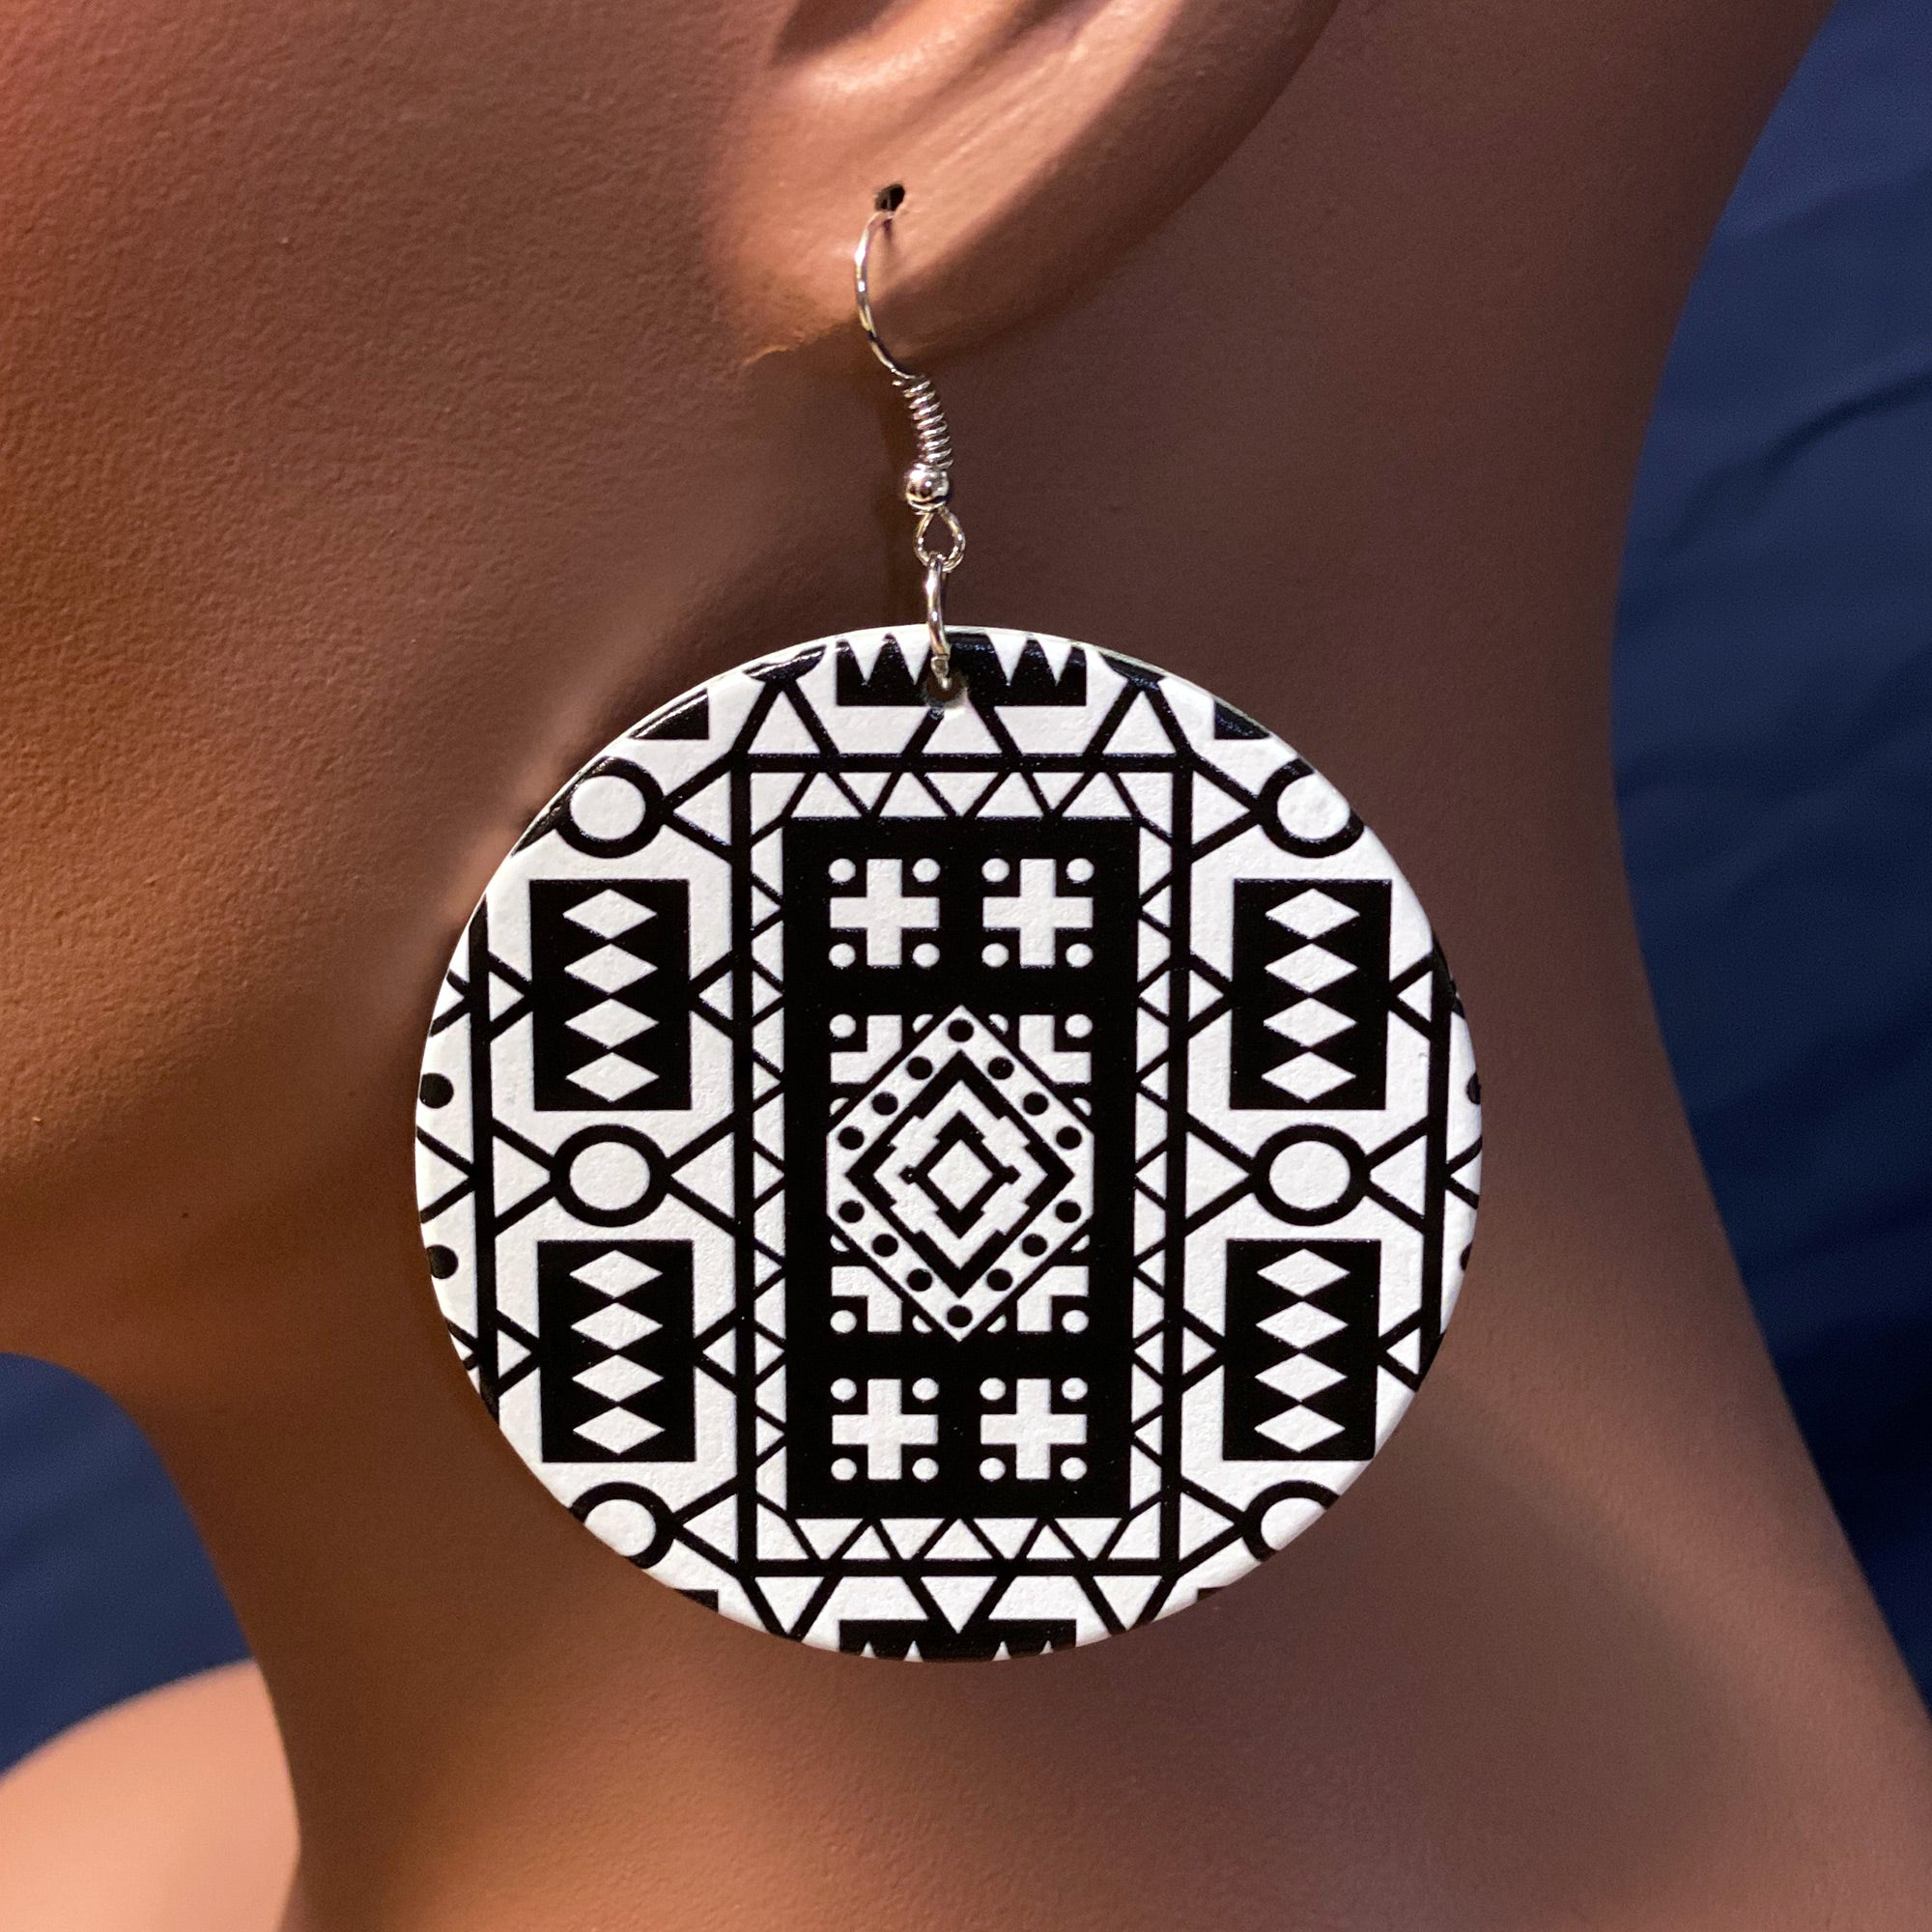 Black / White Samakaka print Earrings - African Samacaca drop earrings